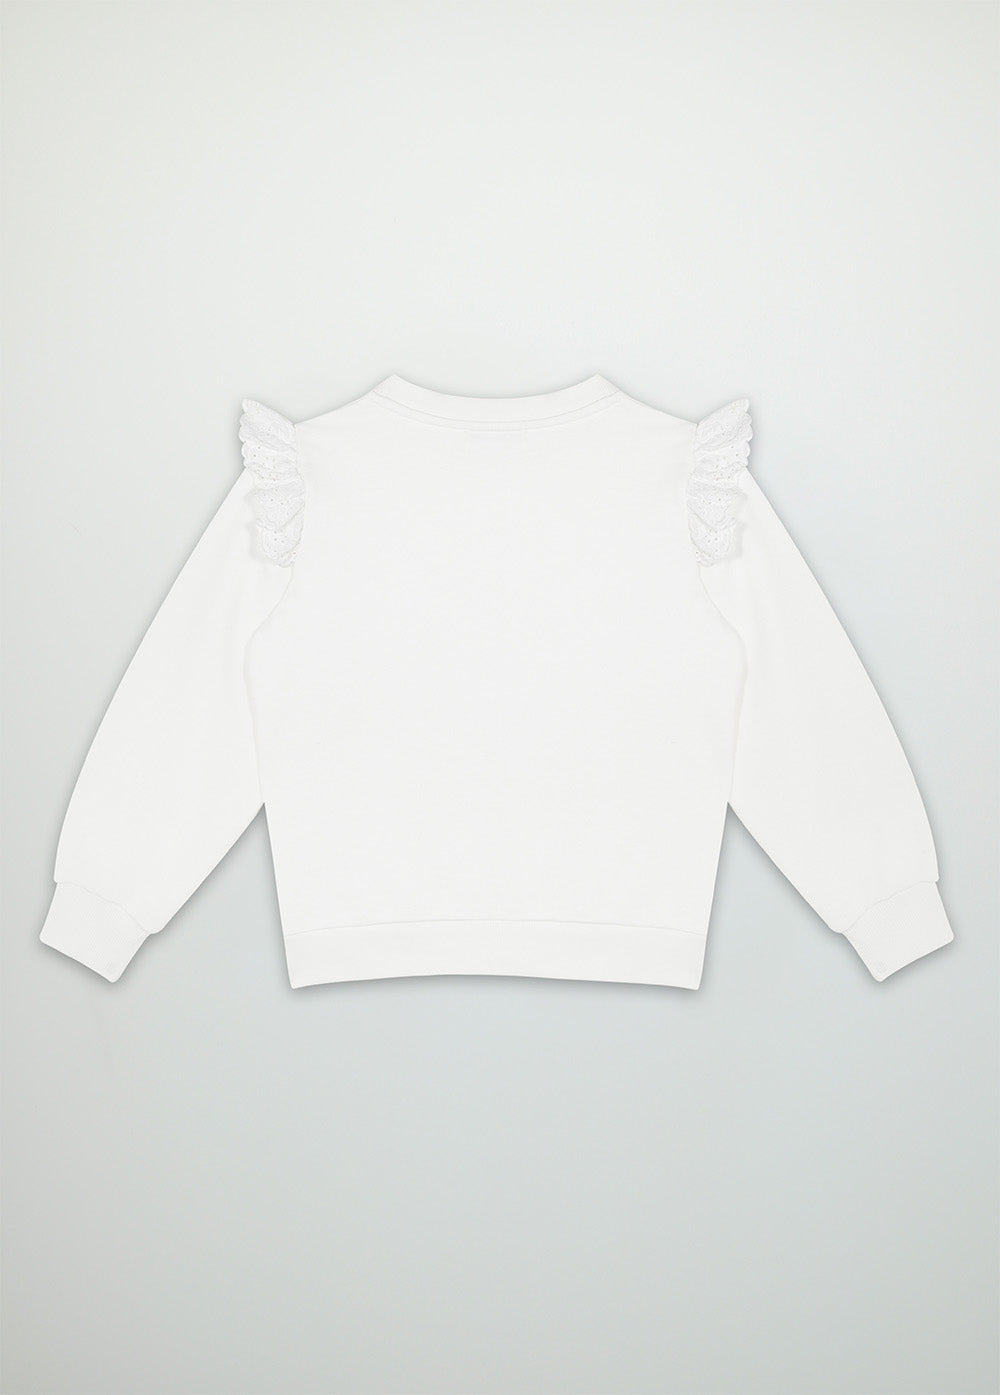 Yoli sweater